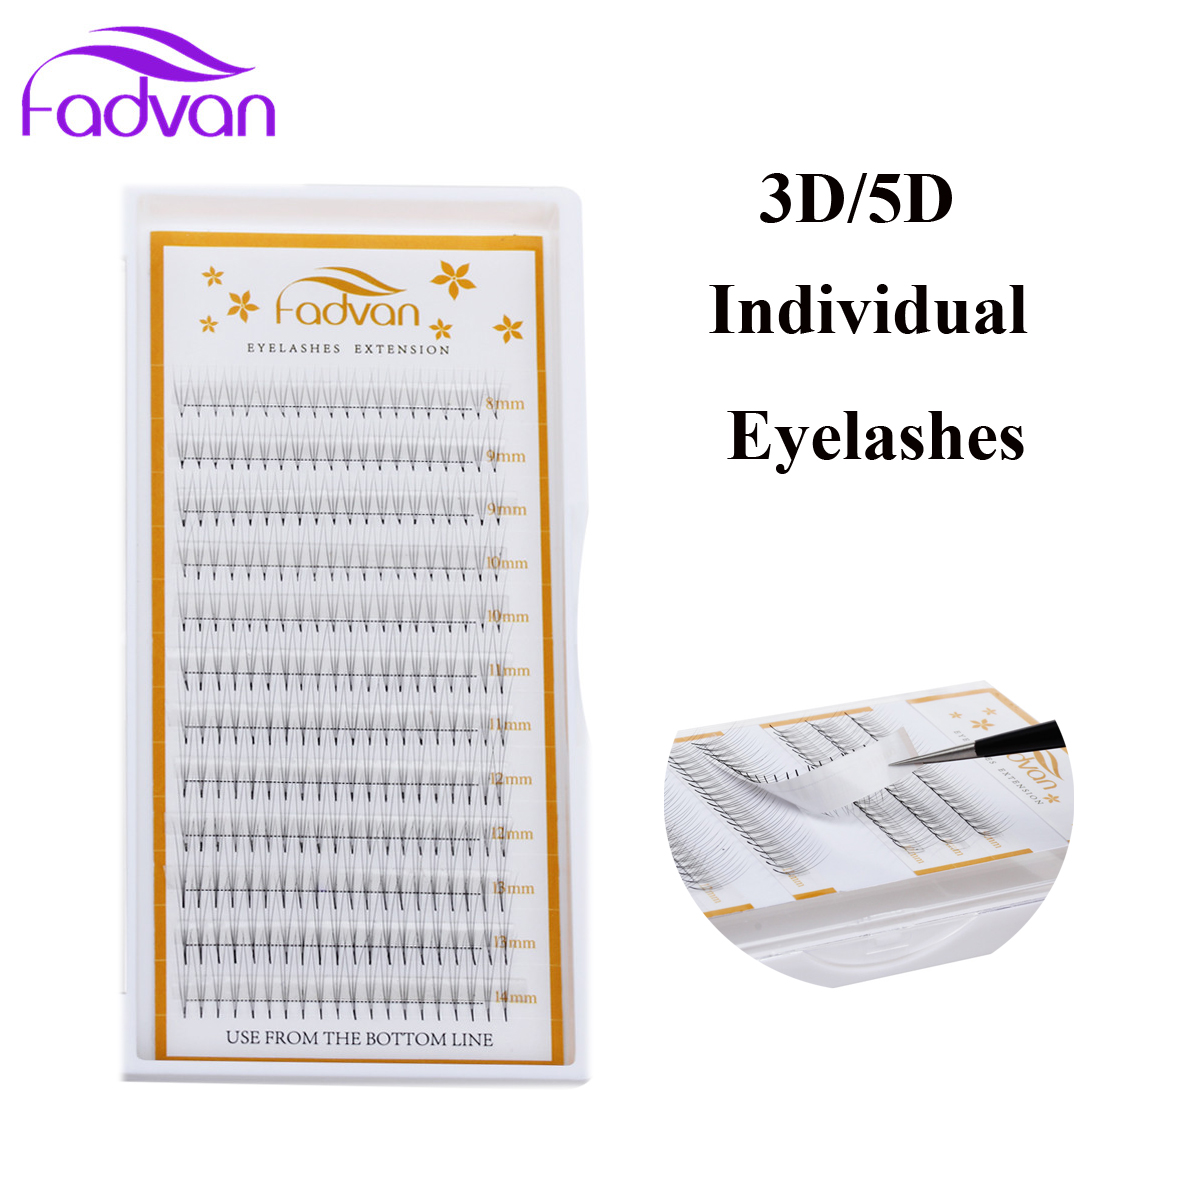 Fadvan Individual False Eyelashes Extension Tools Faux Human Hair Fake Eye Lashes Natural Long Eye Lash Growth 1 Case/set Makeup